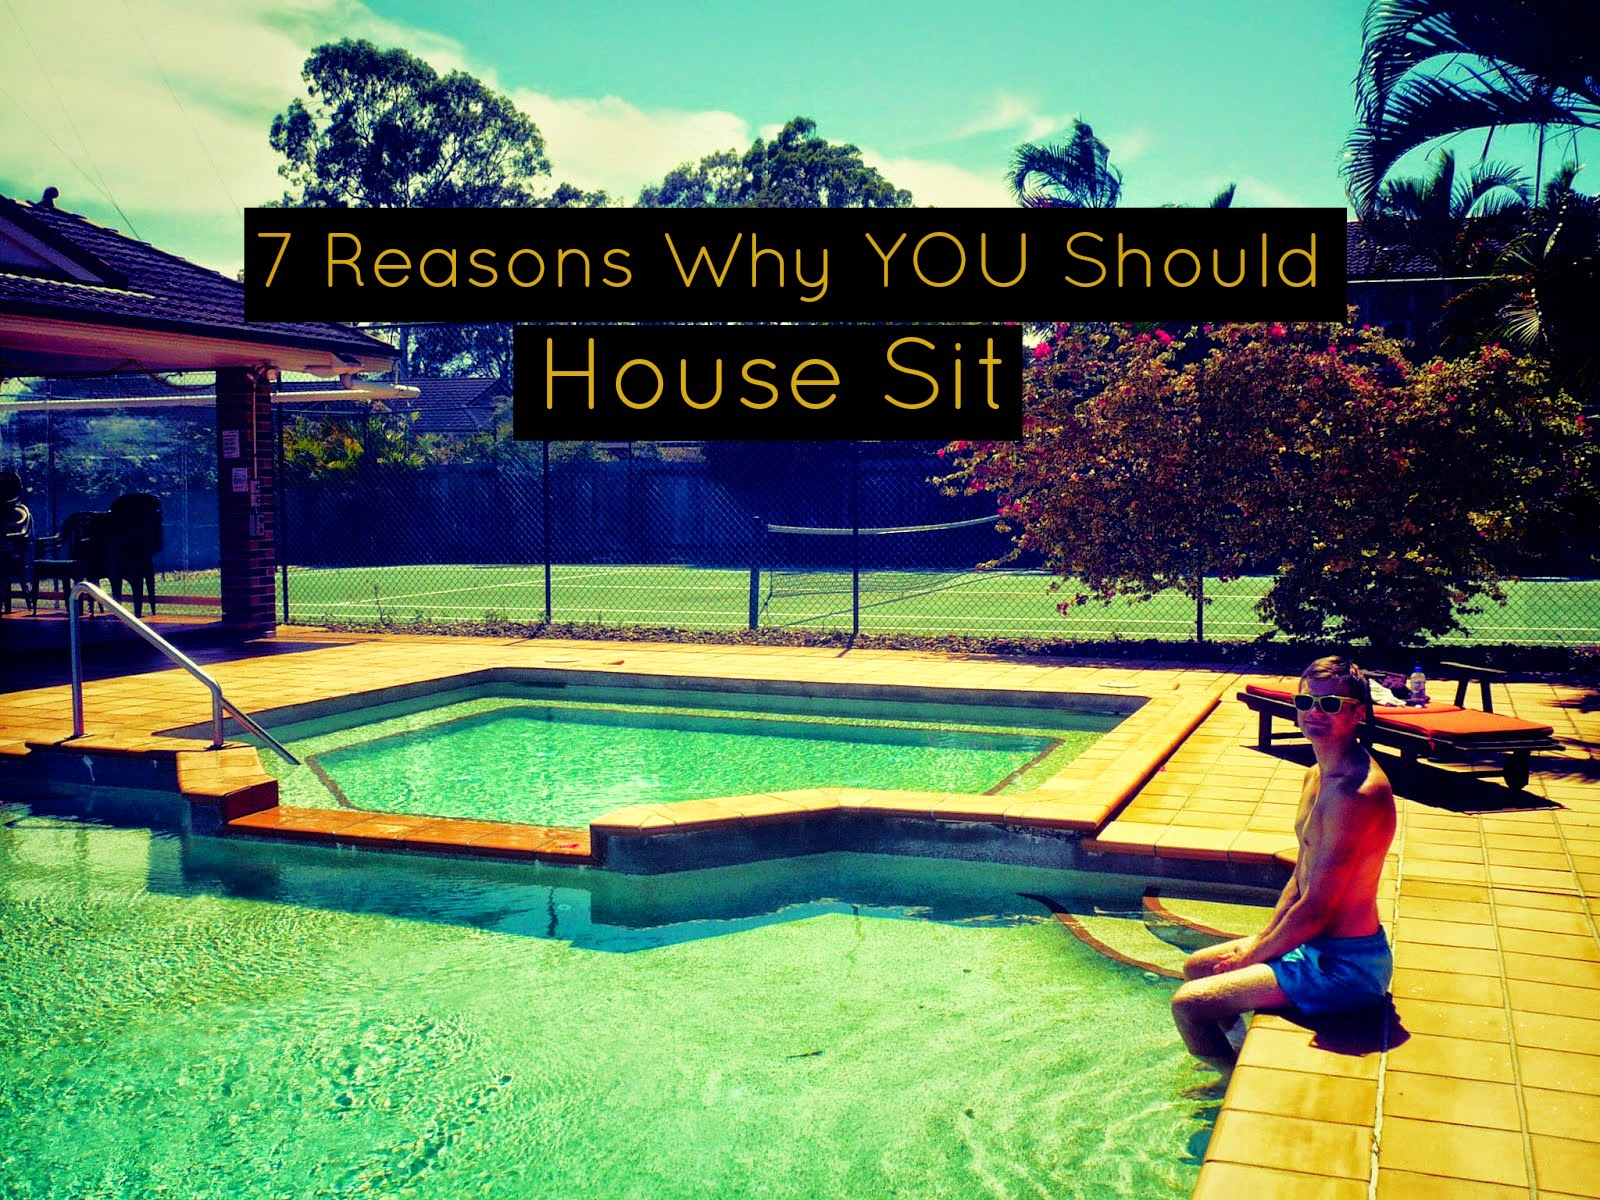 7 reasons you should house sit